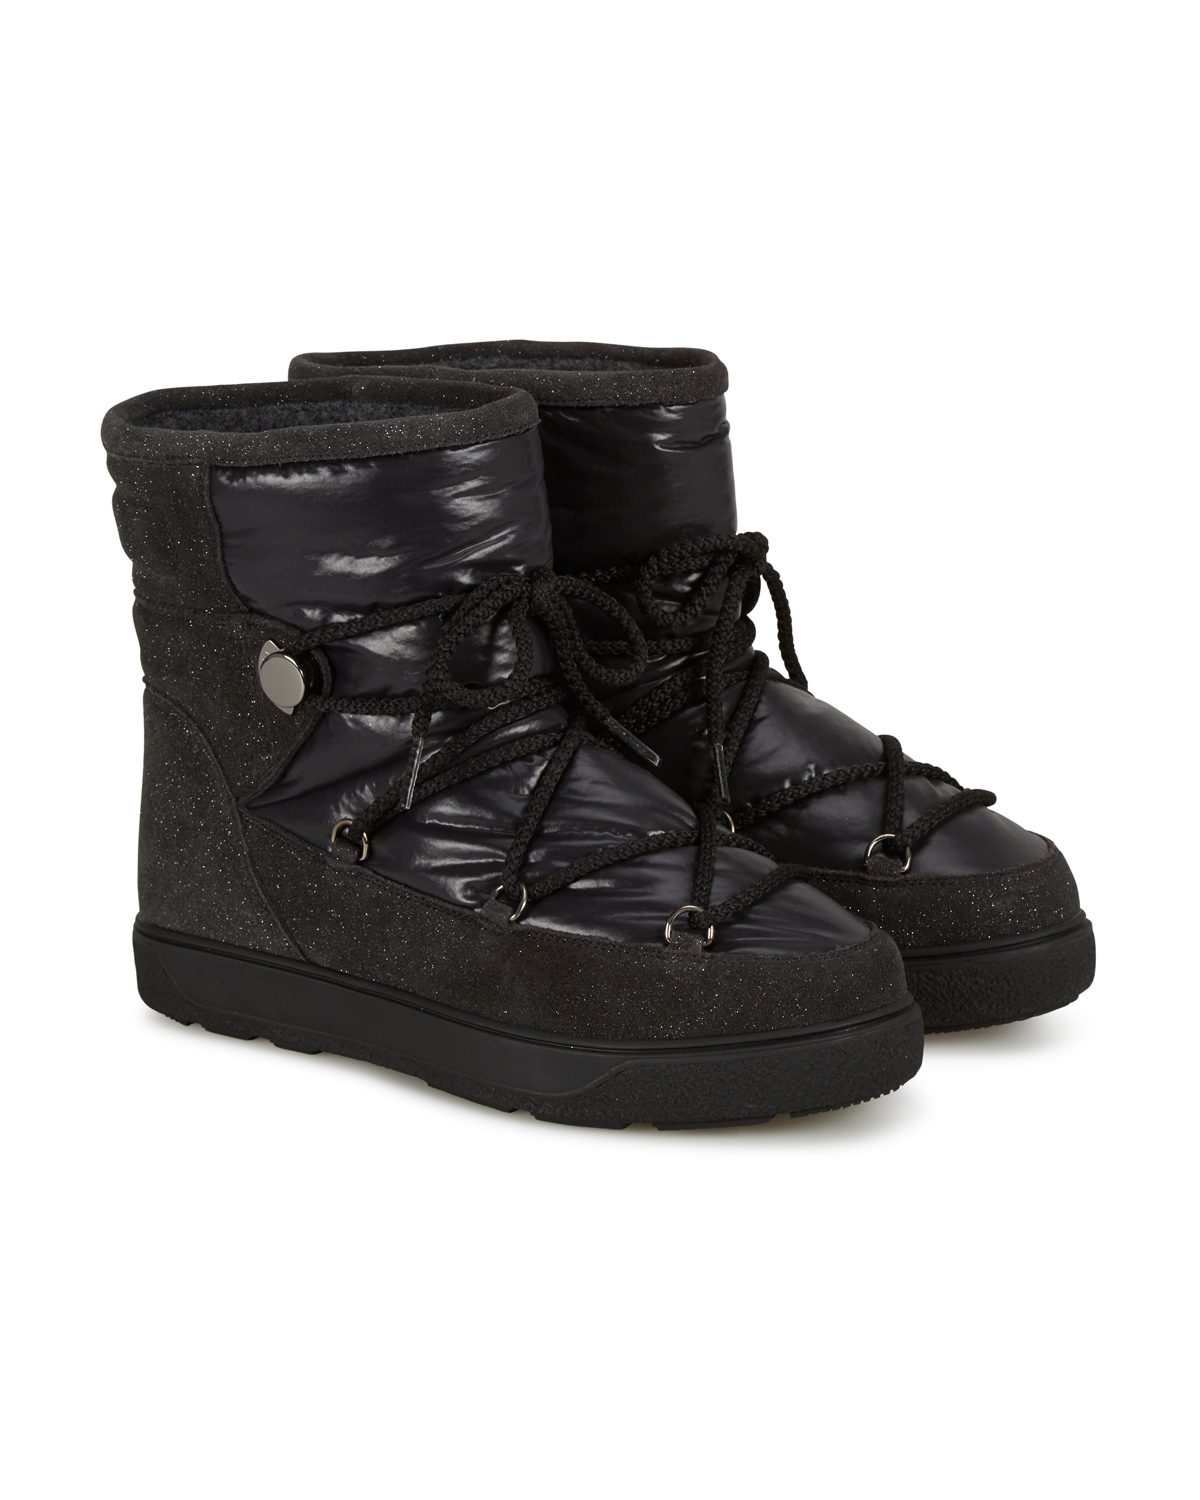 Moncler New Fanny Women s Padded Snow Boots Black - Linea Fashion ce4303db1a8